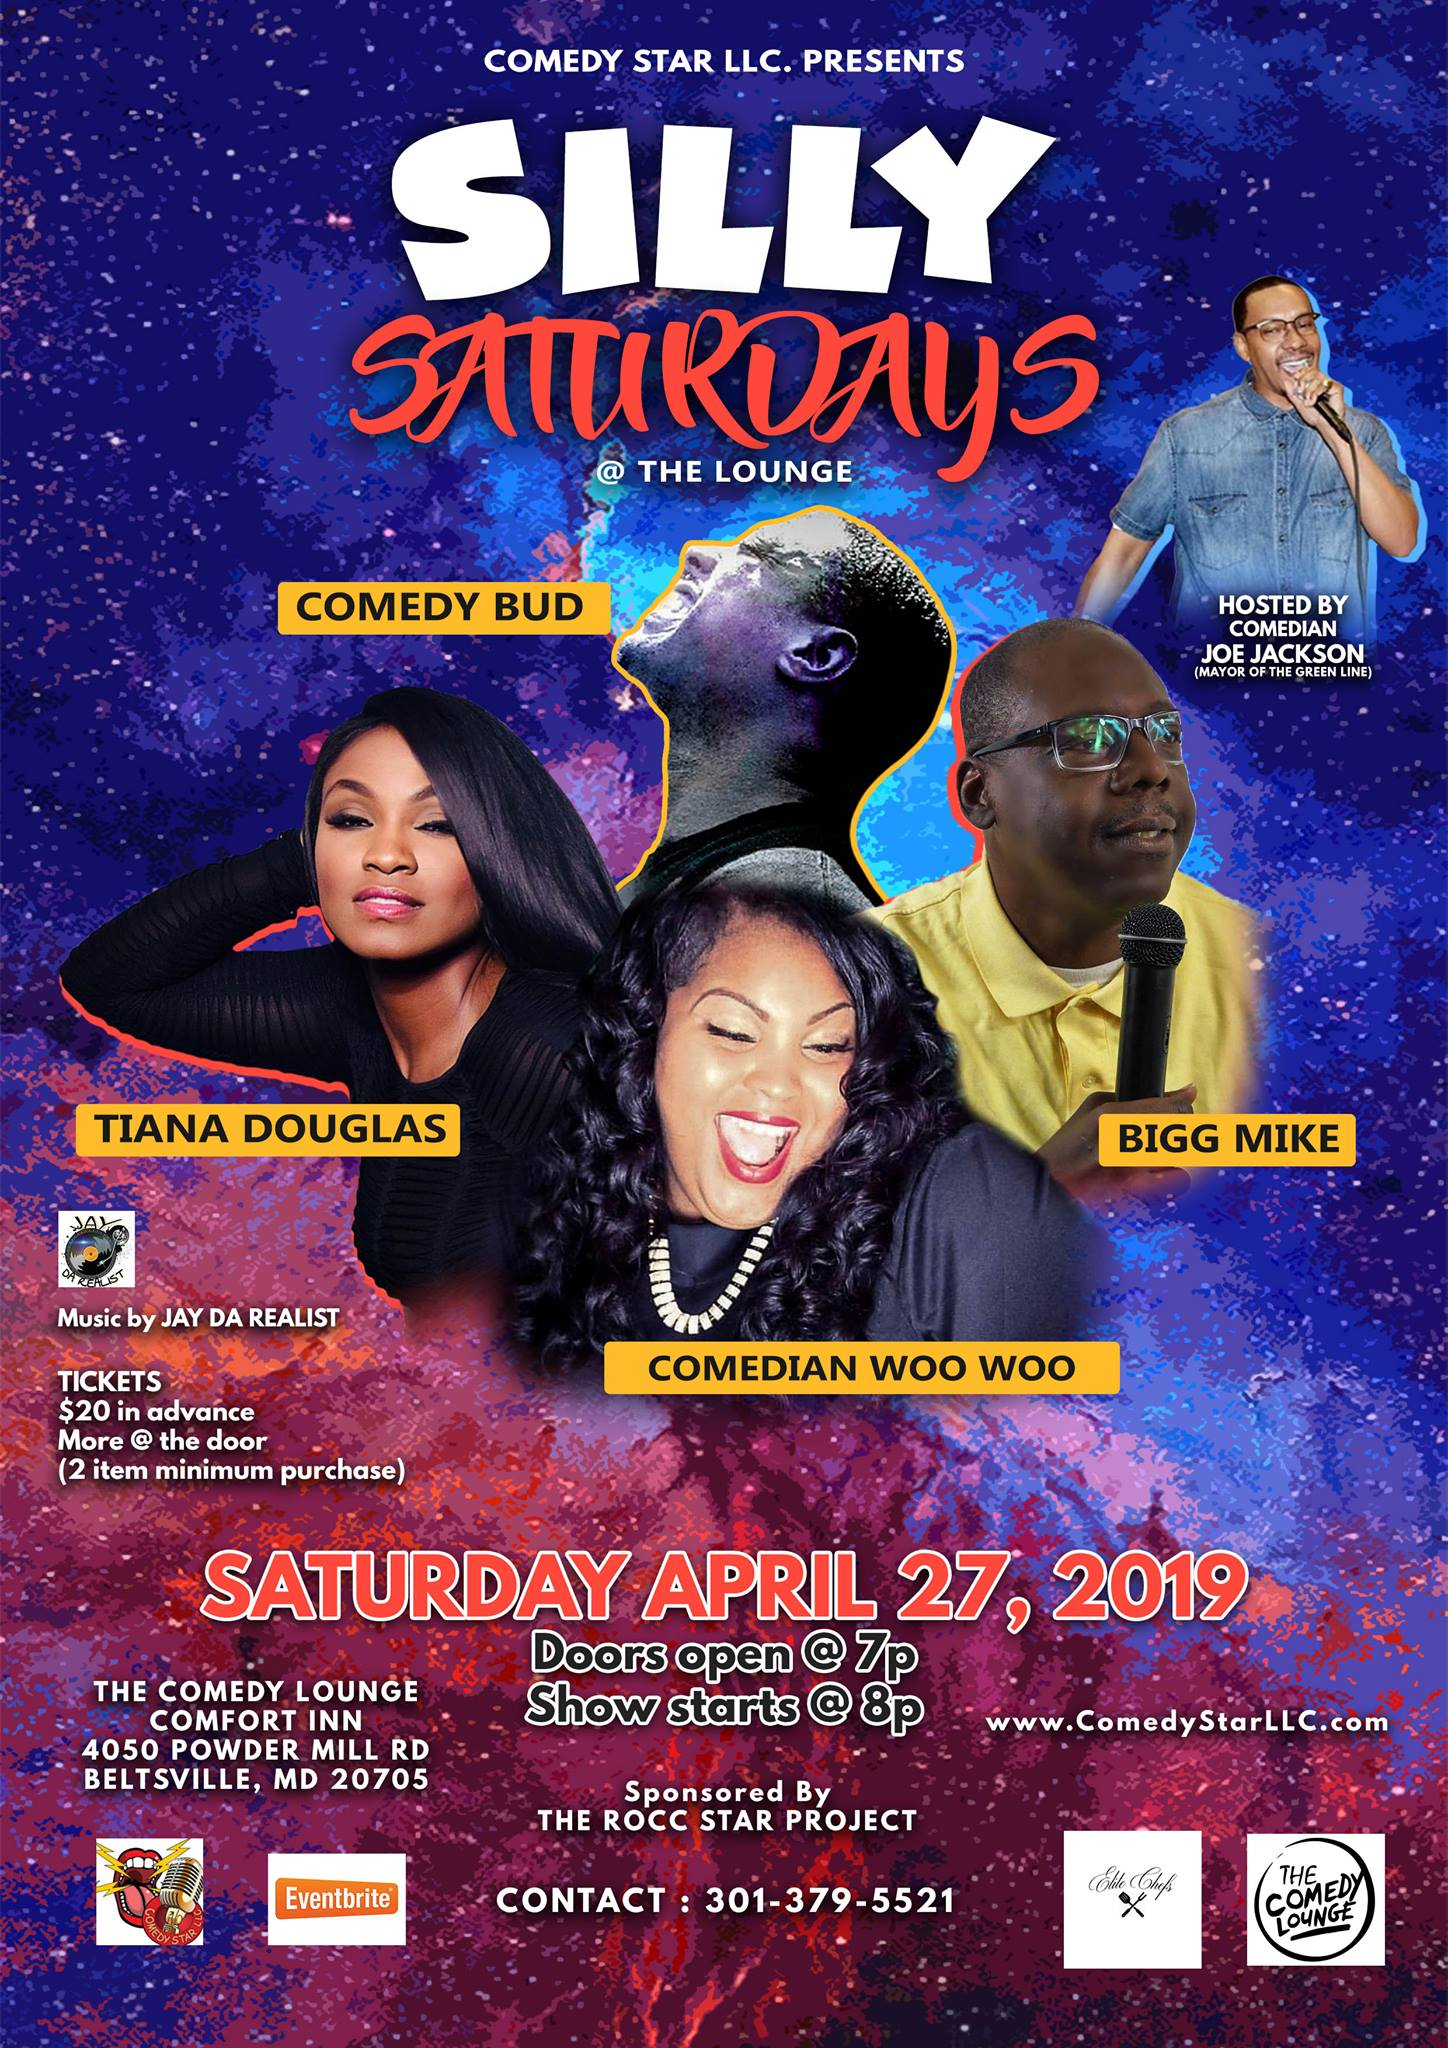 SILLY SATURDAYS @ THE LOUNGE ft COMEDY B